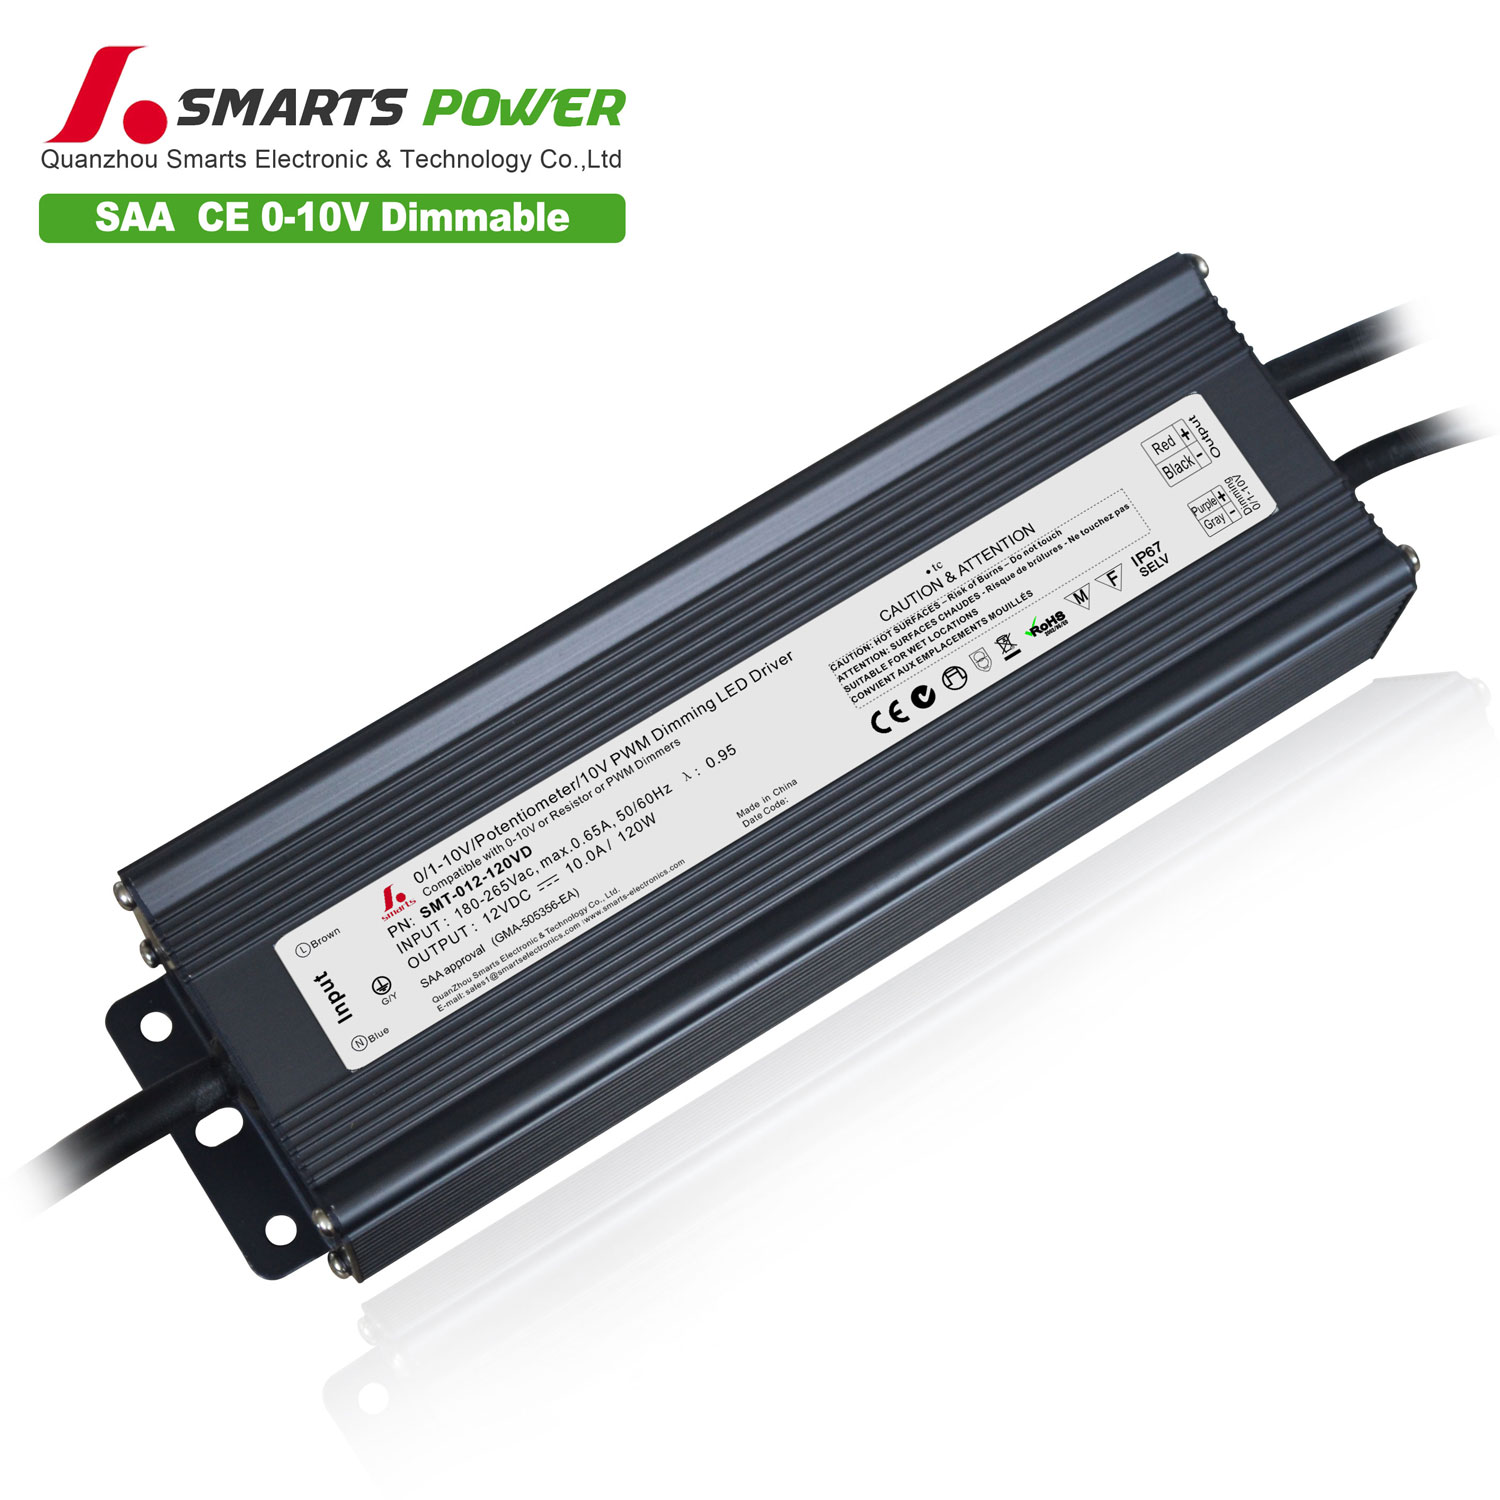 SAA dimmable led driver